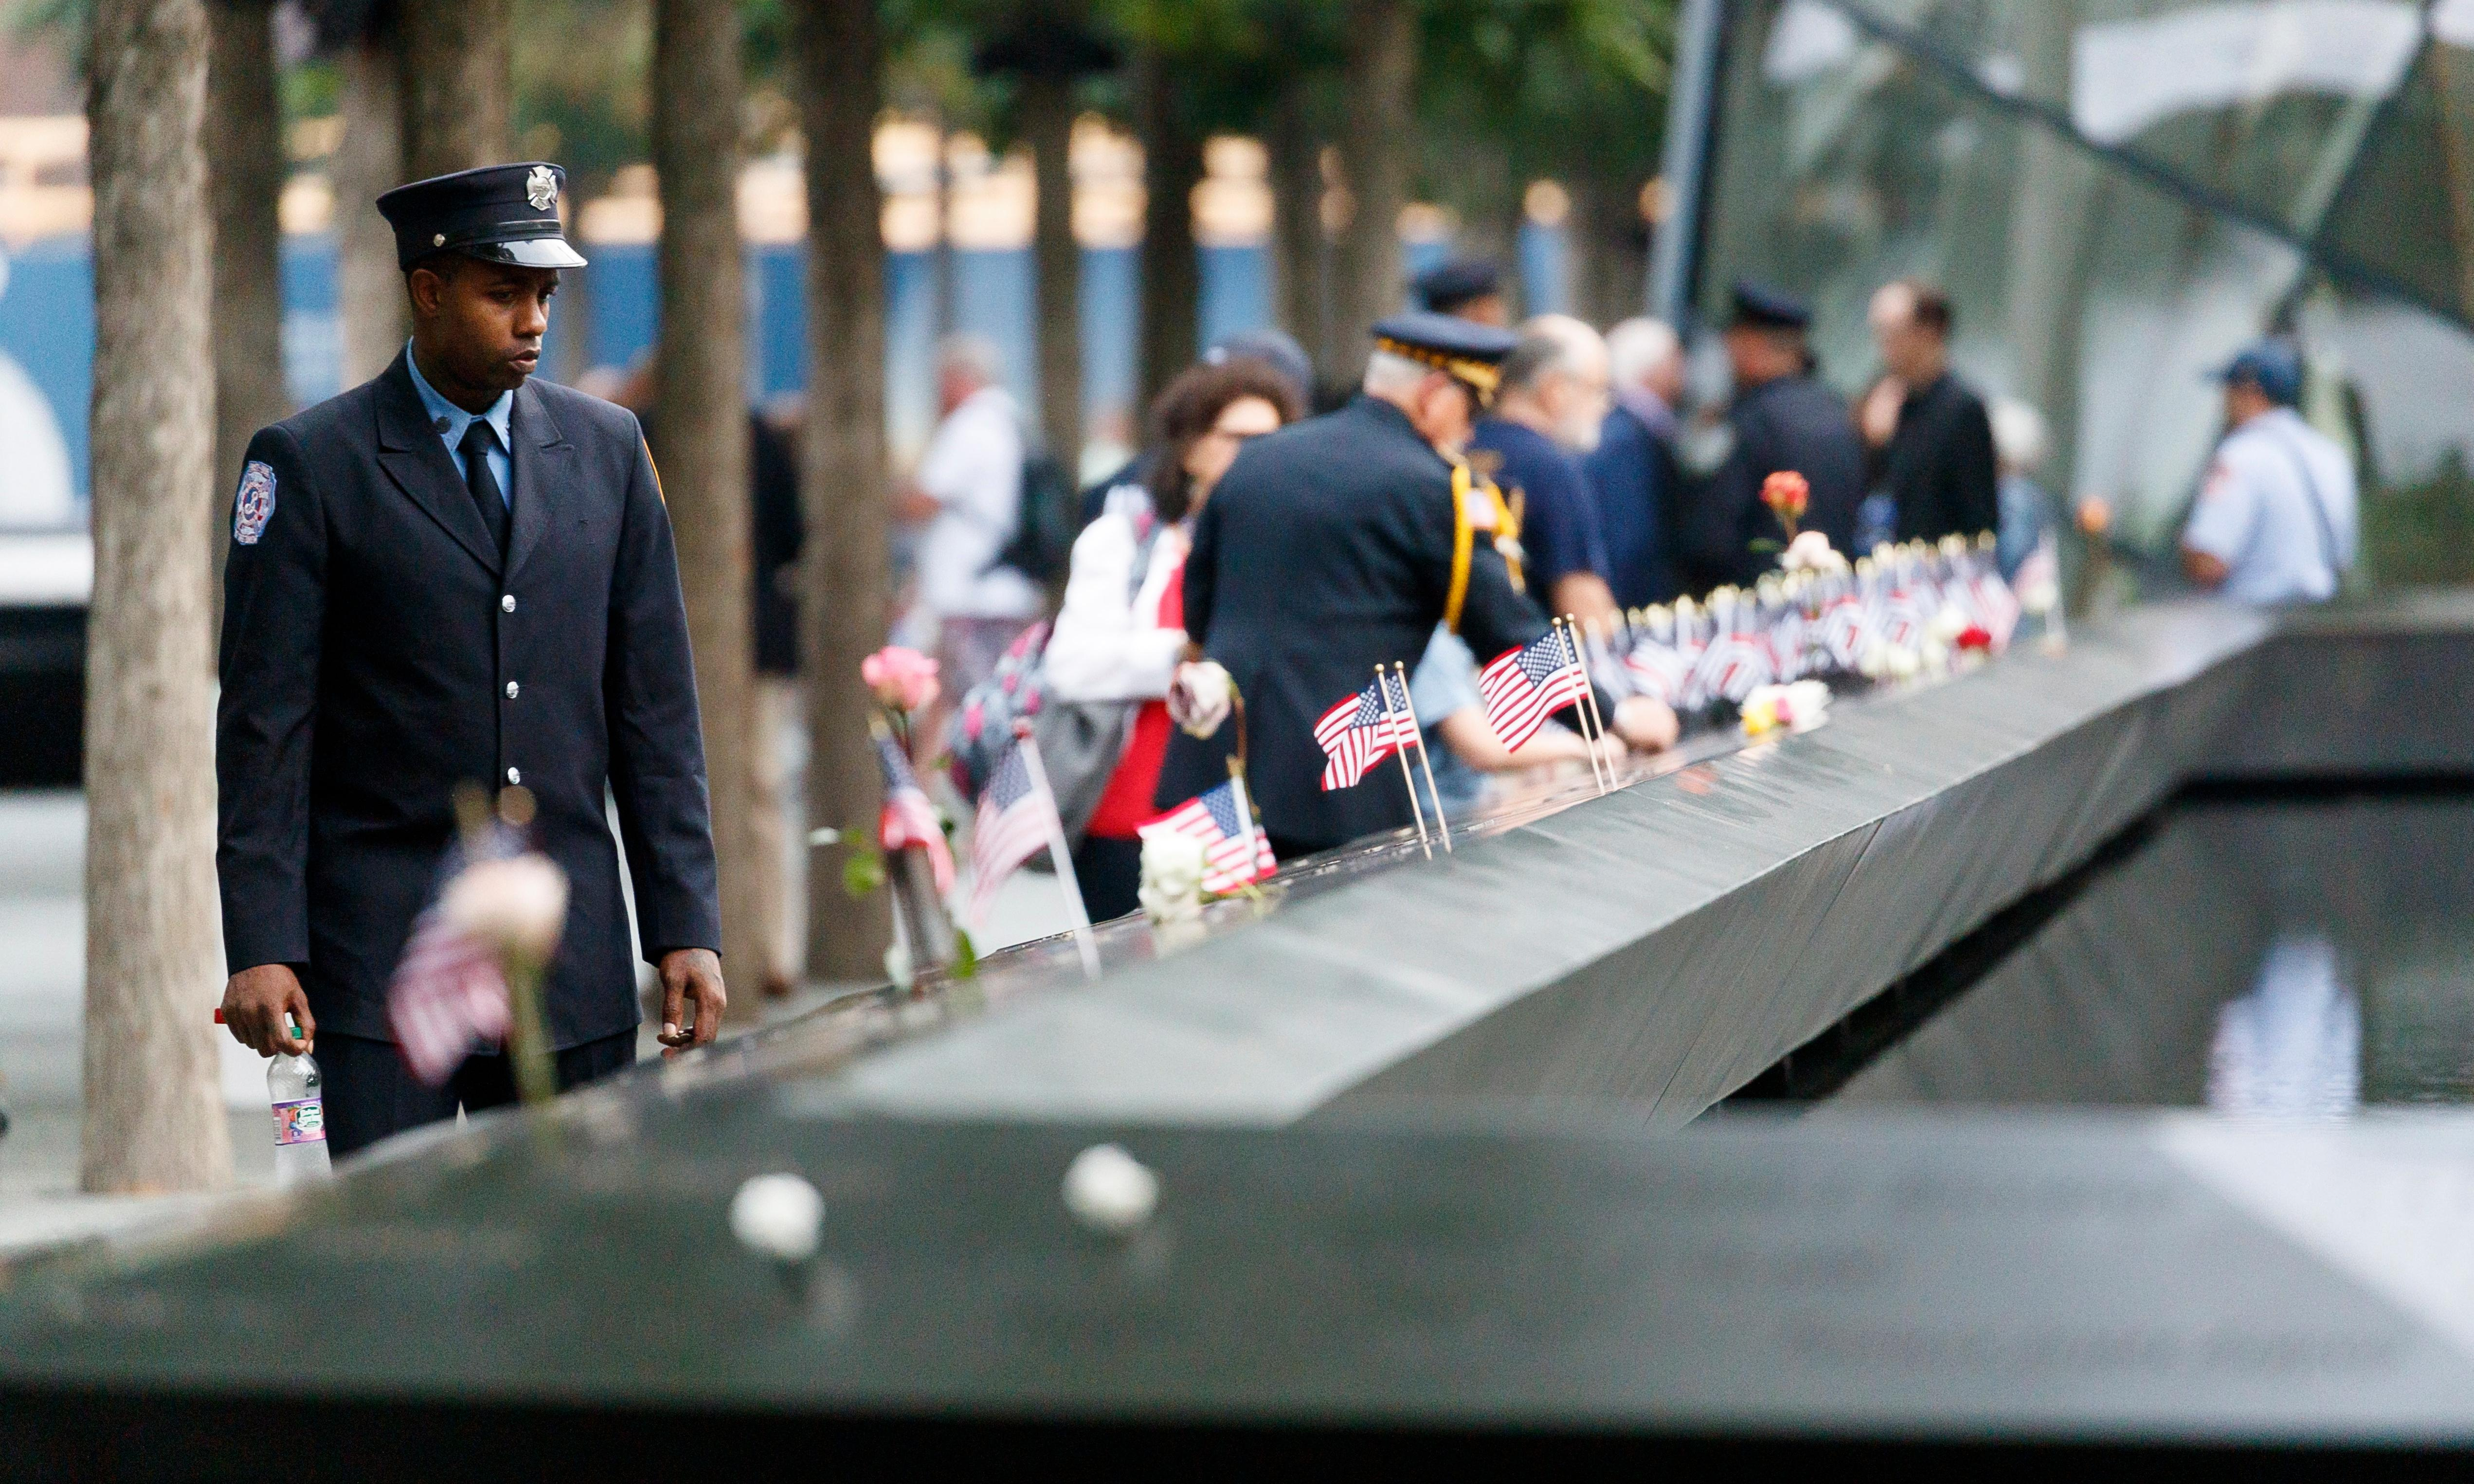 New York firefighters recall 9/11 victims in wake of cancelled Taliban talks